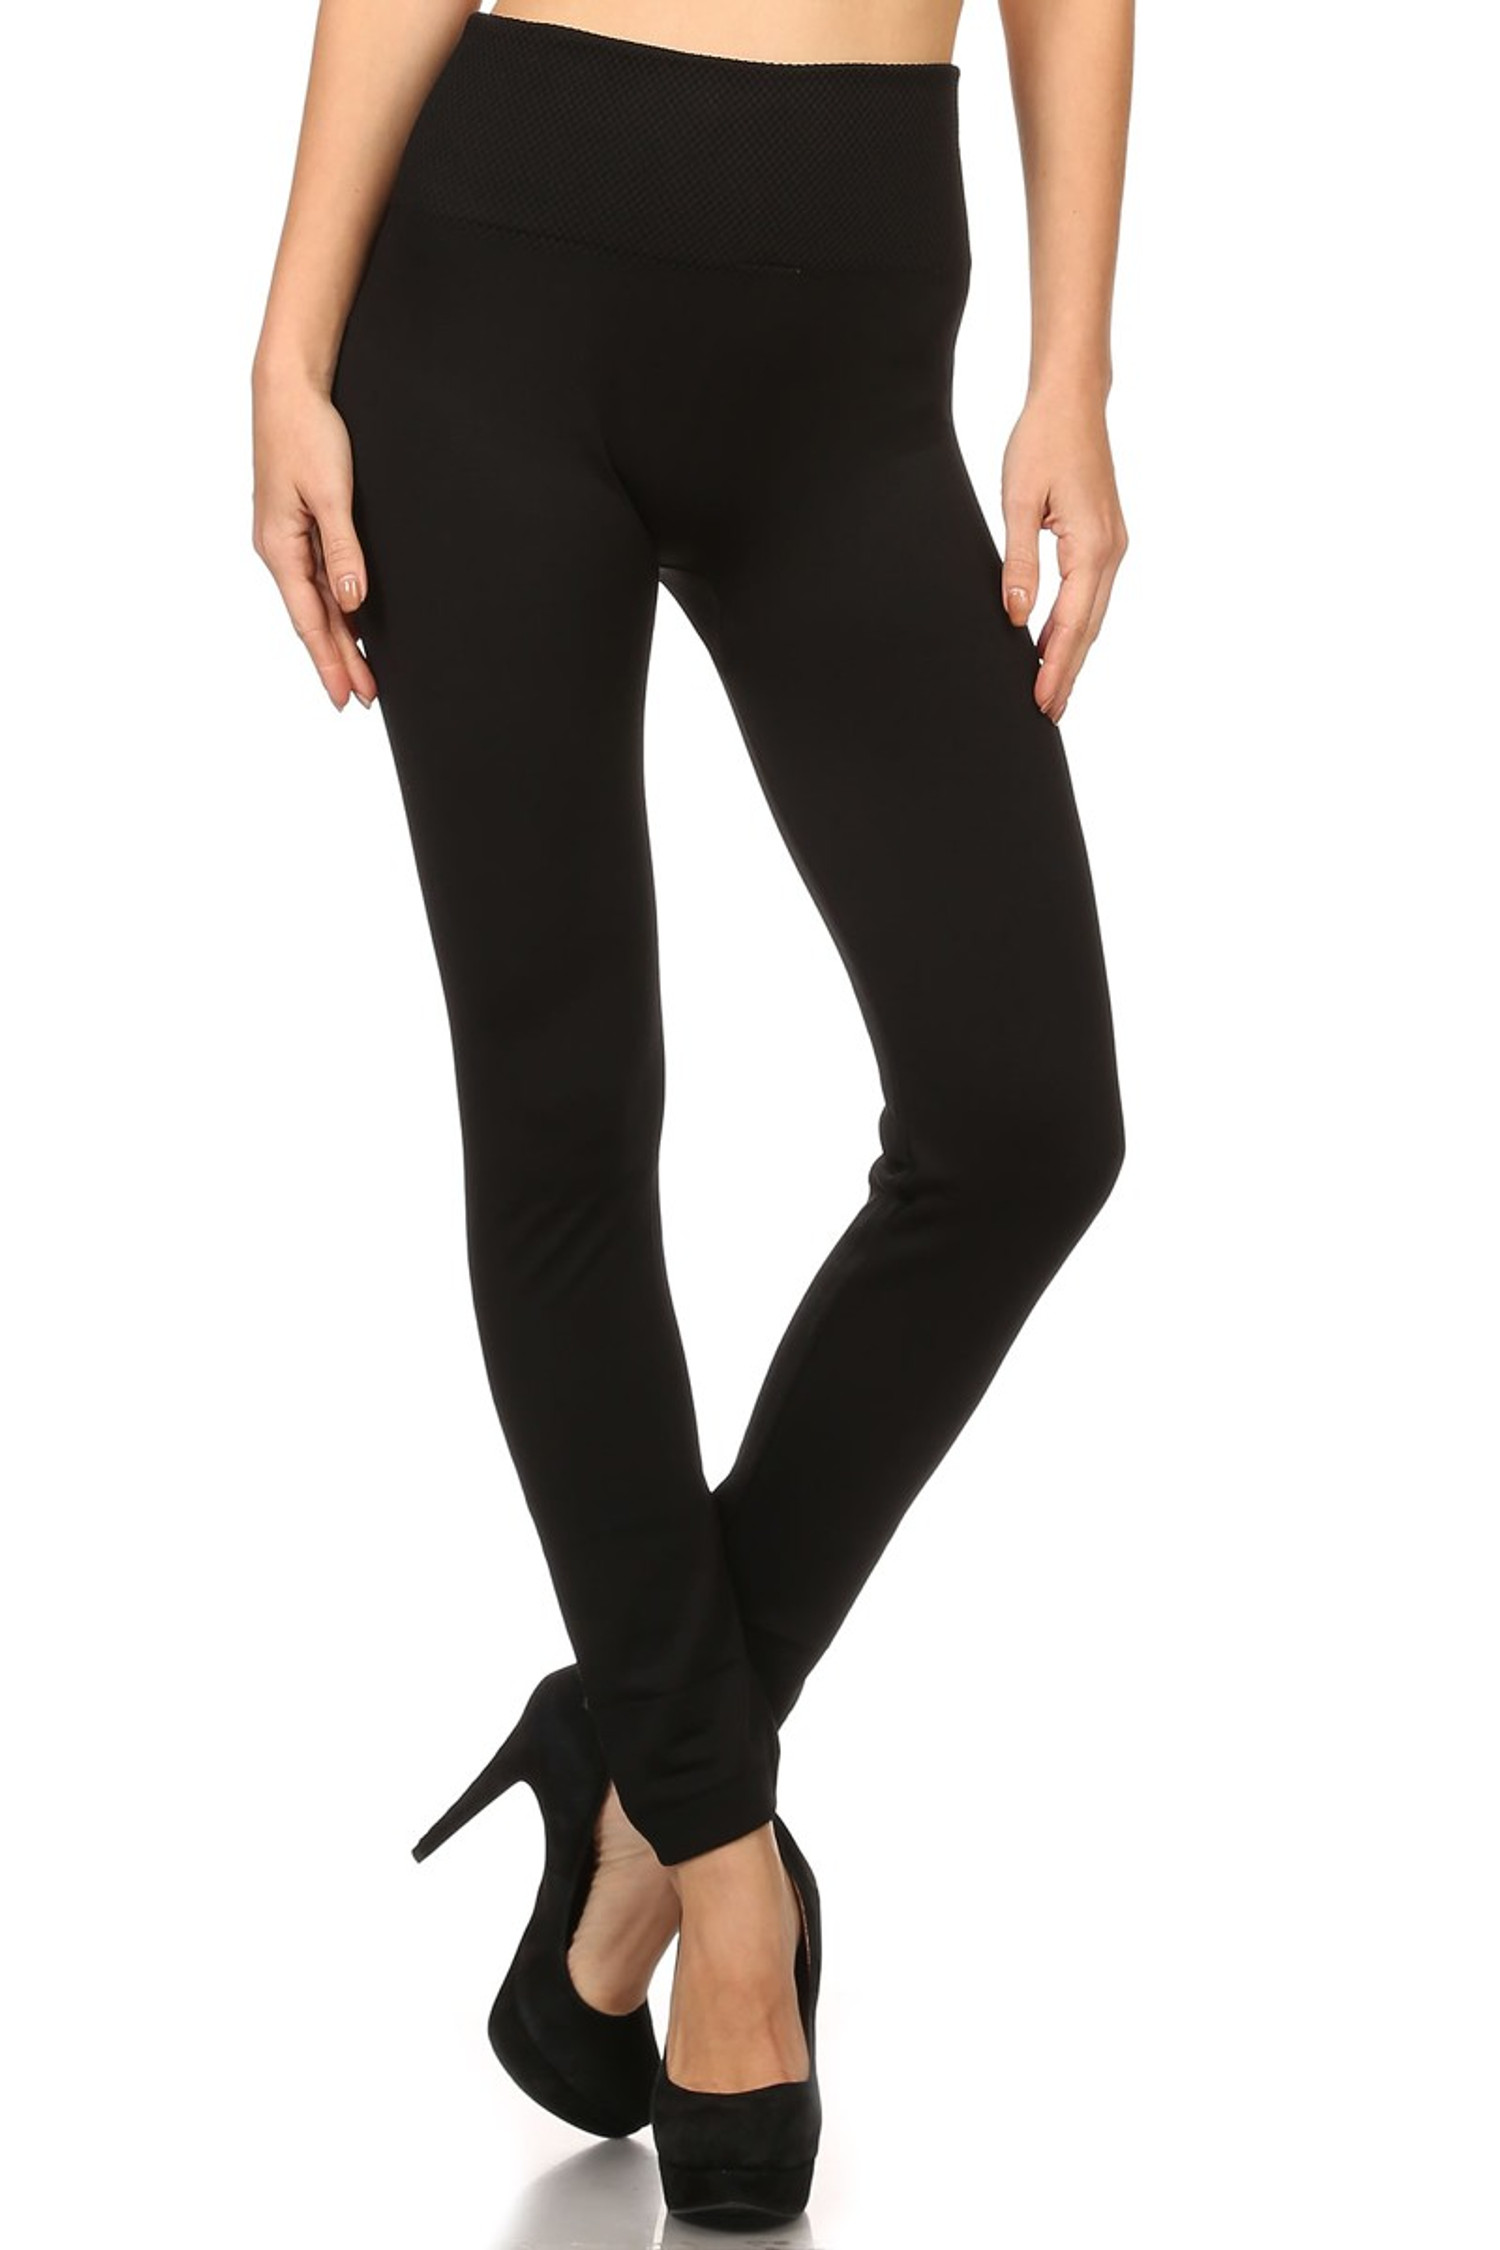 front image of fashion model with legs crossed showing Black Banded High Waisted Fleece Lined Leggings with a ribbed high waisted fabric waist band and warm, tight fit and comfortable full length fit of the fleece fabric